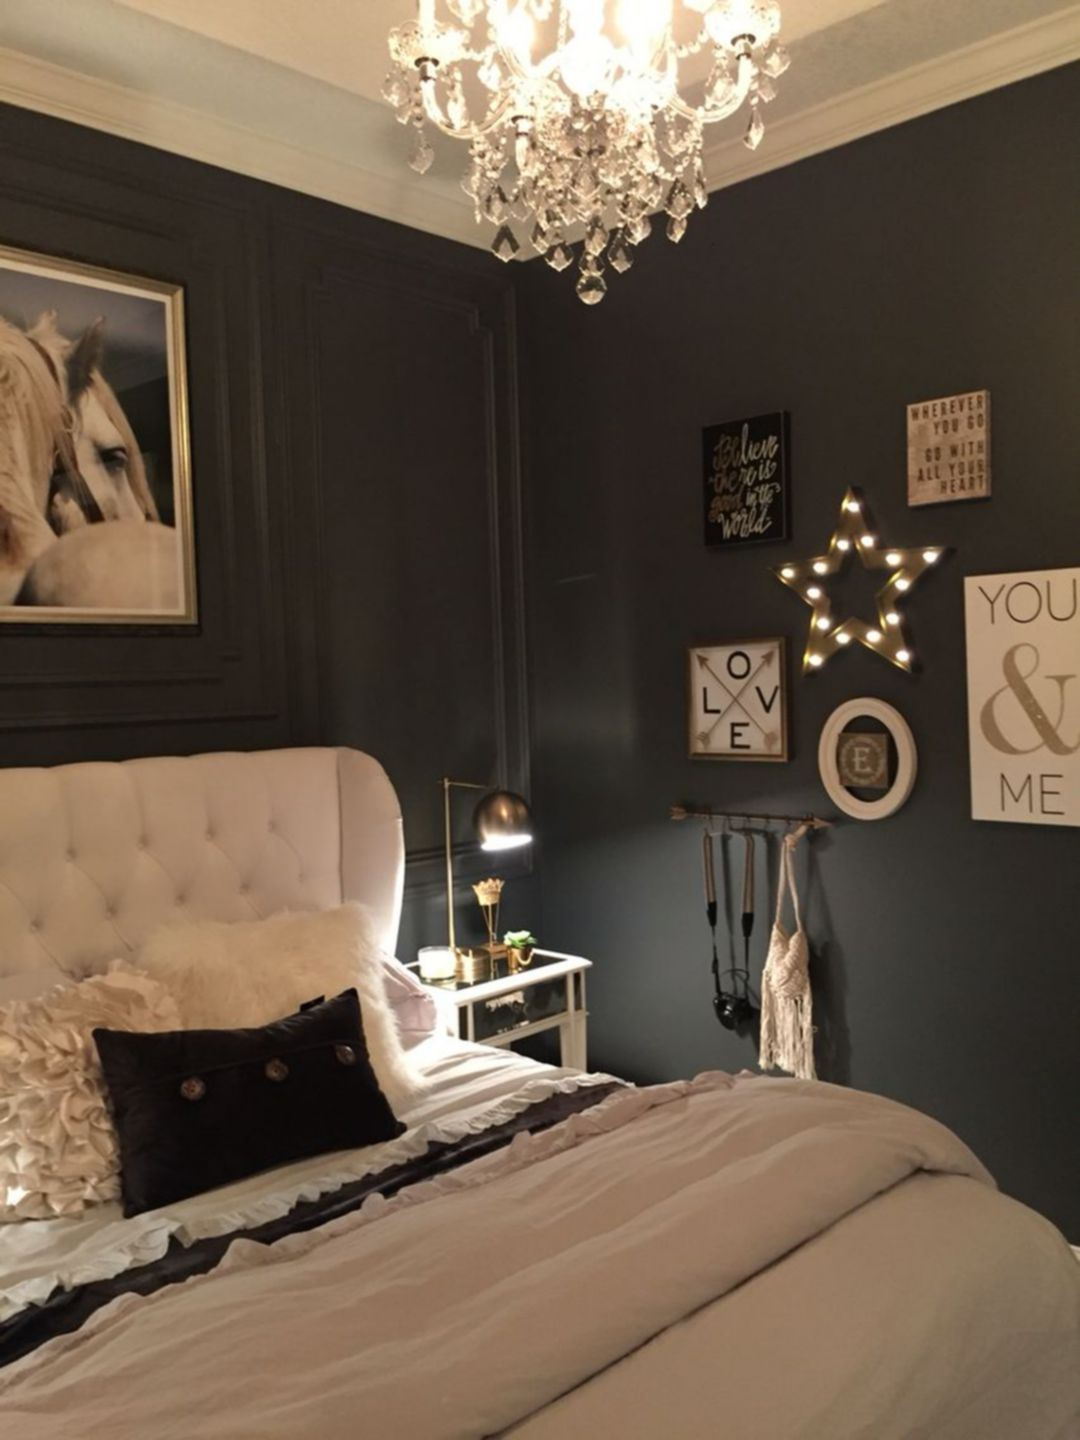 Top 9 Cool Black Master Bedroom Ideas To Inspire You images